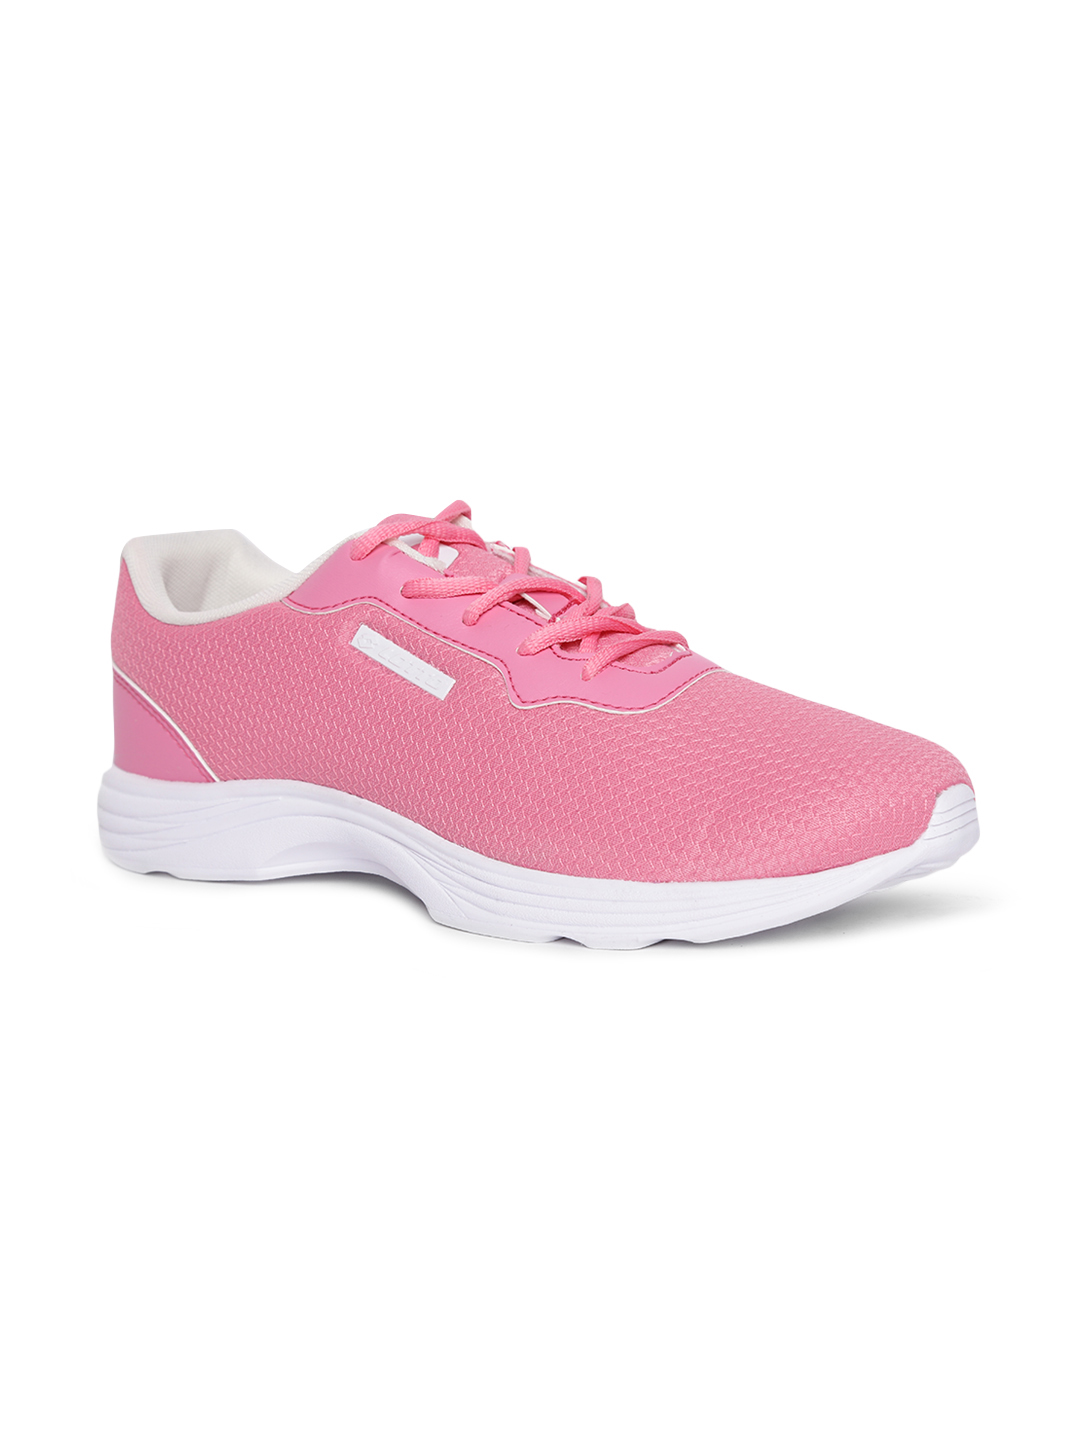 Lotto | Lotto Women's Flavia Pink Running Shoes